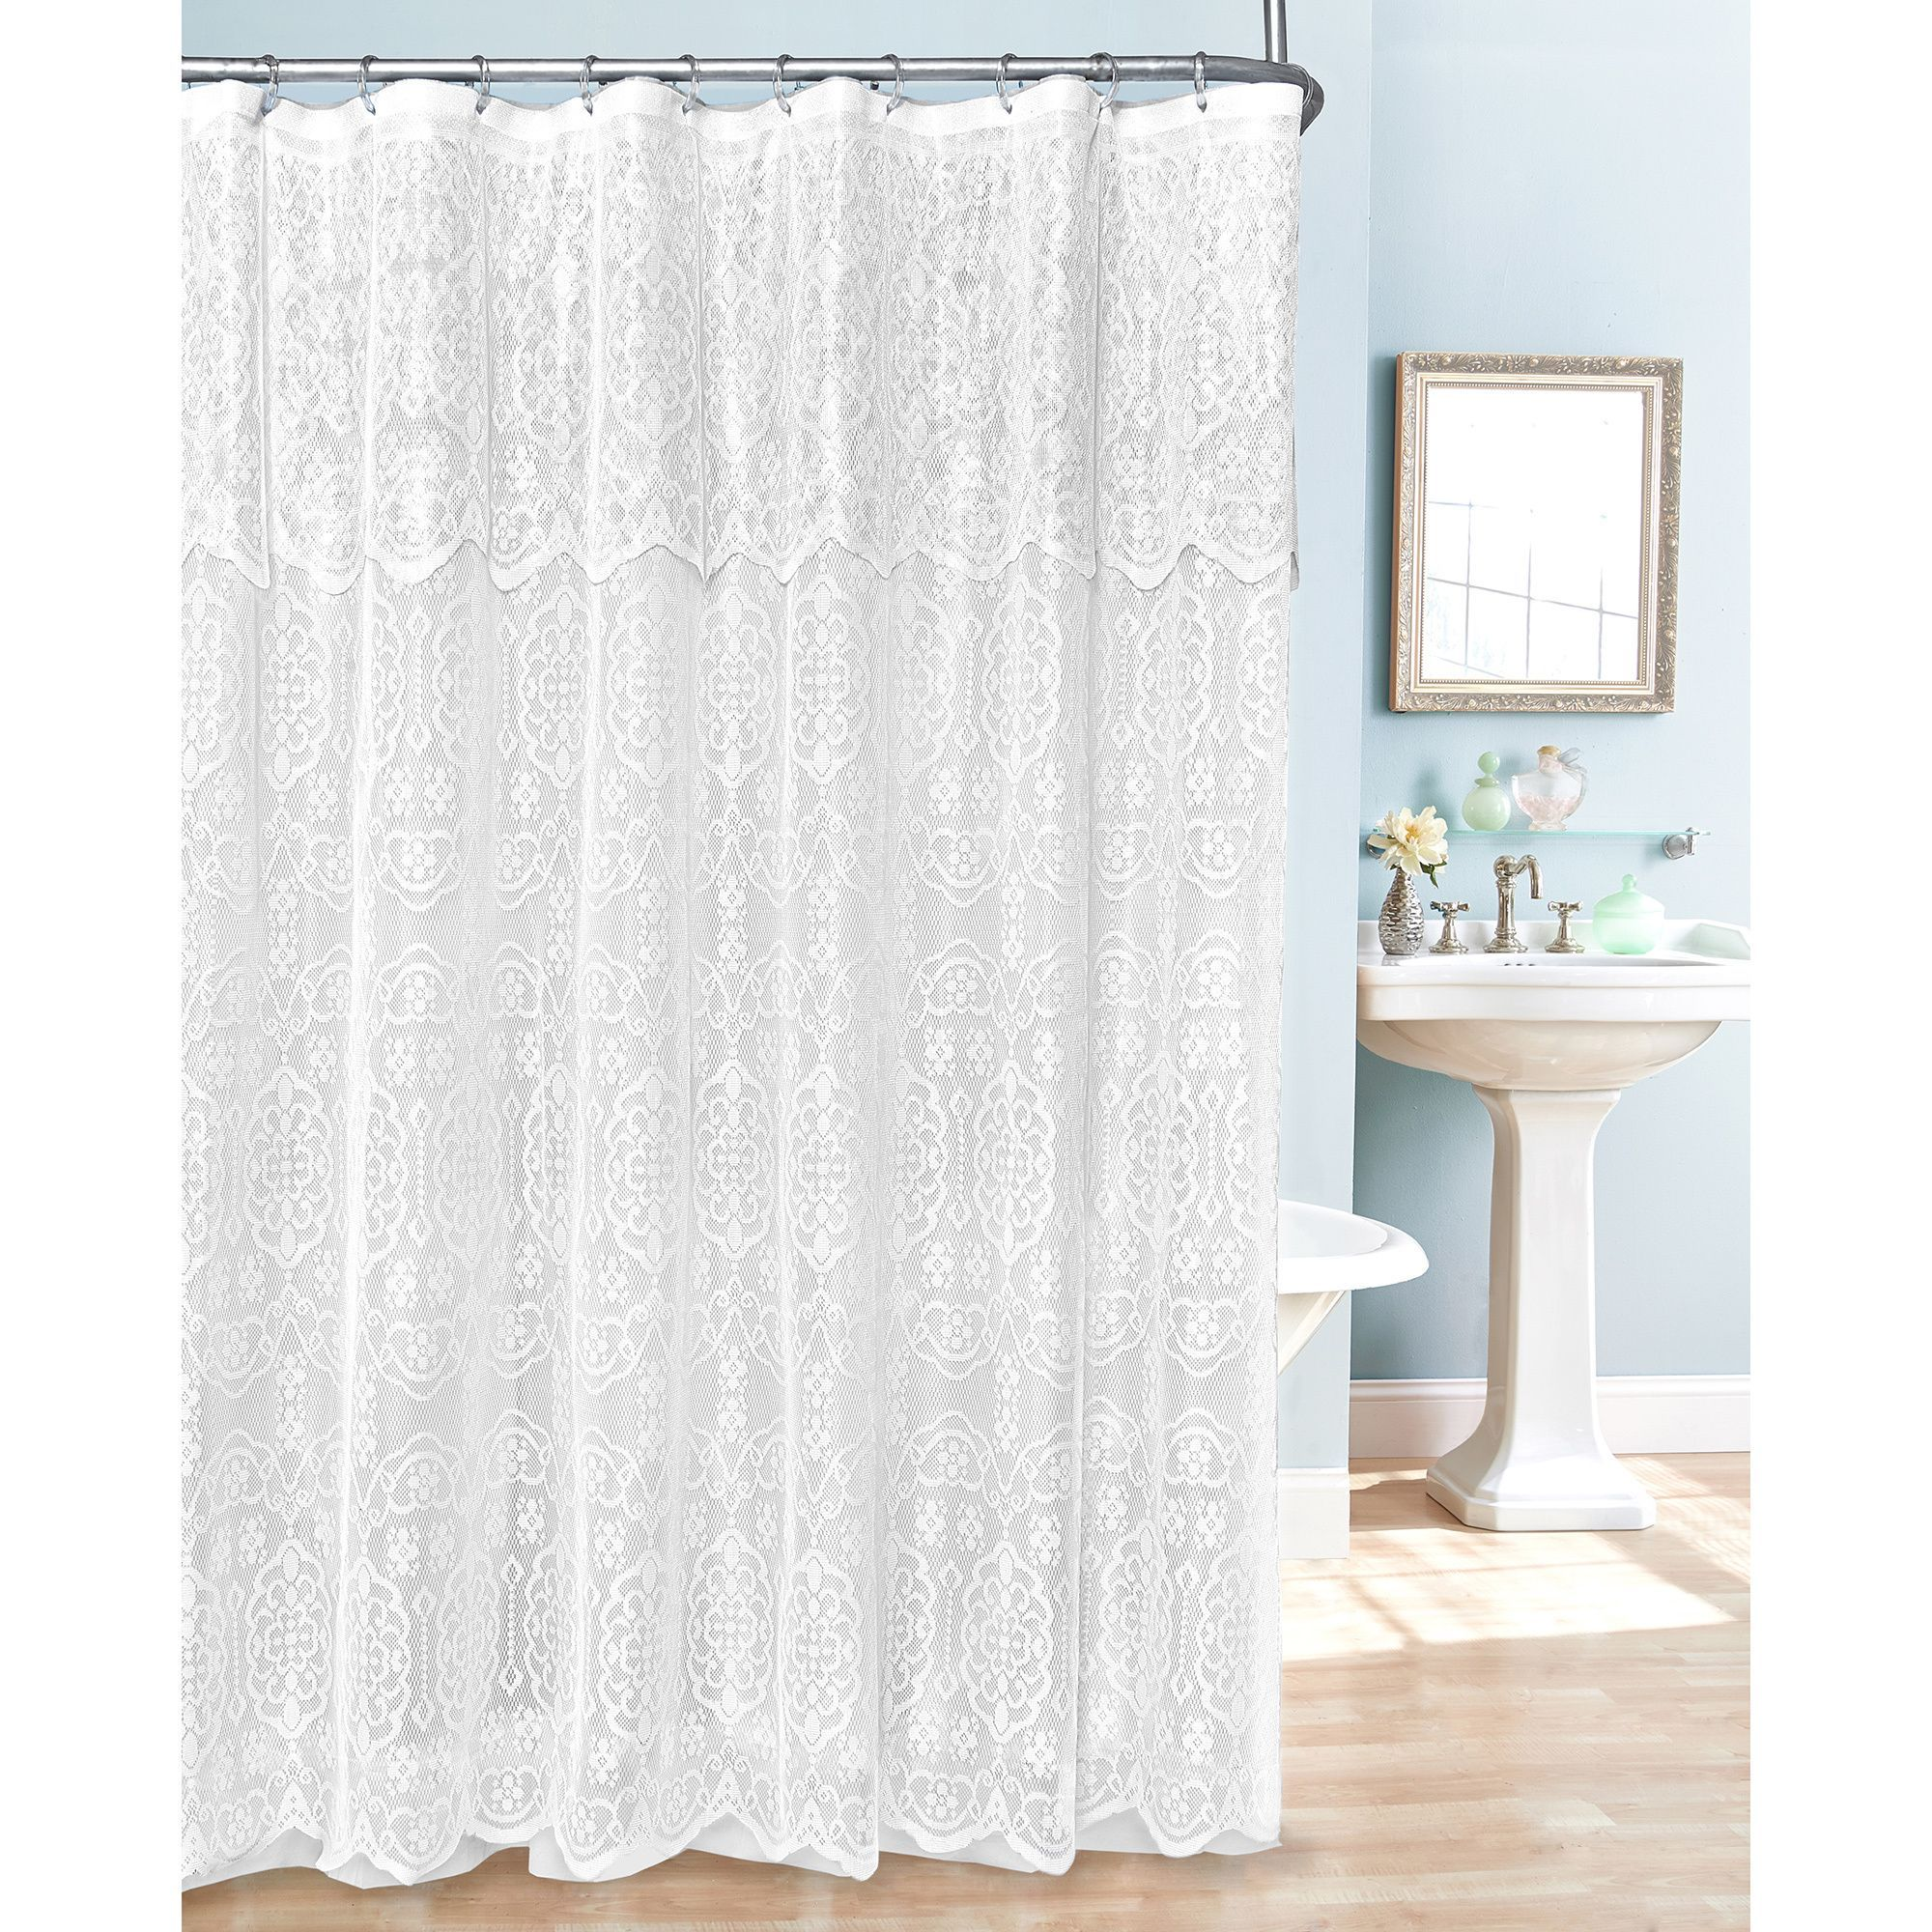 This Beautiful White Lace Shower Curtain Has A Delicate Attached